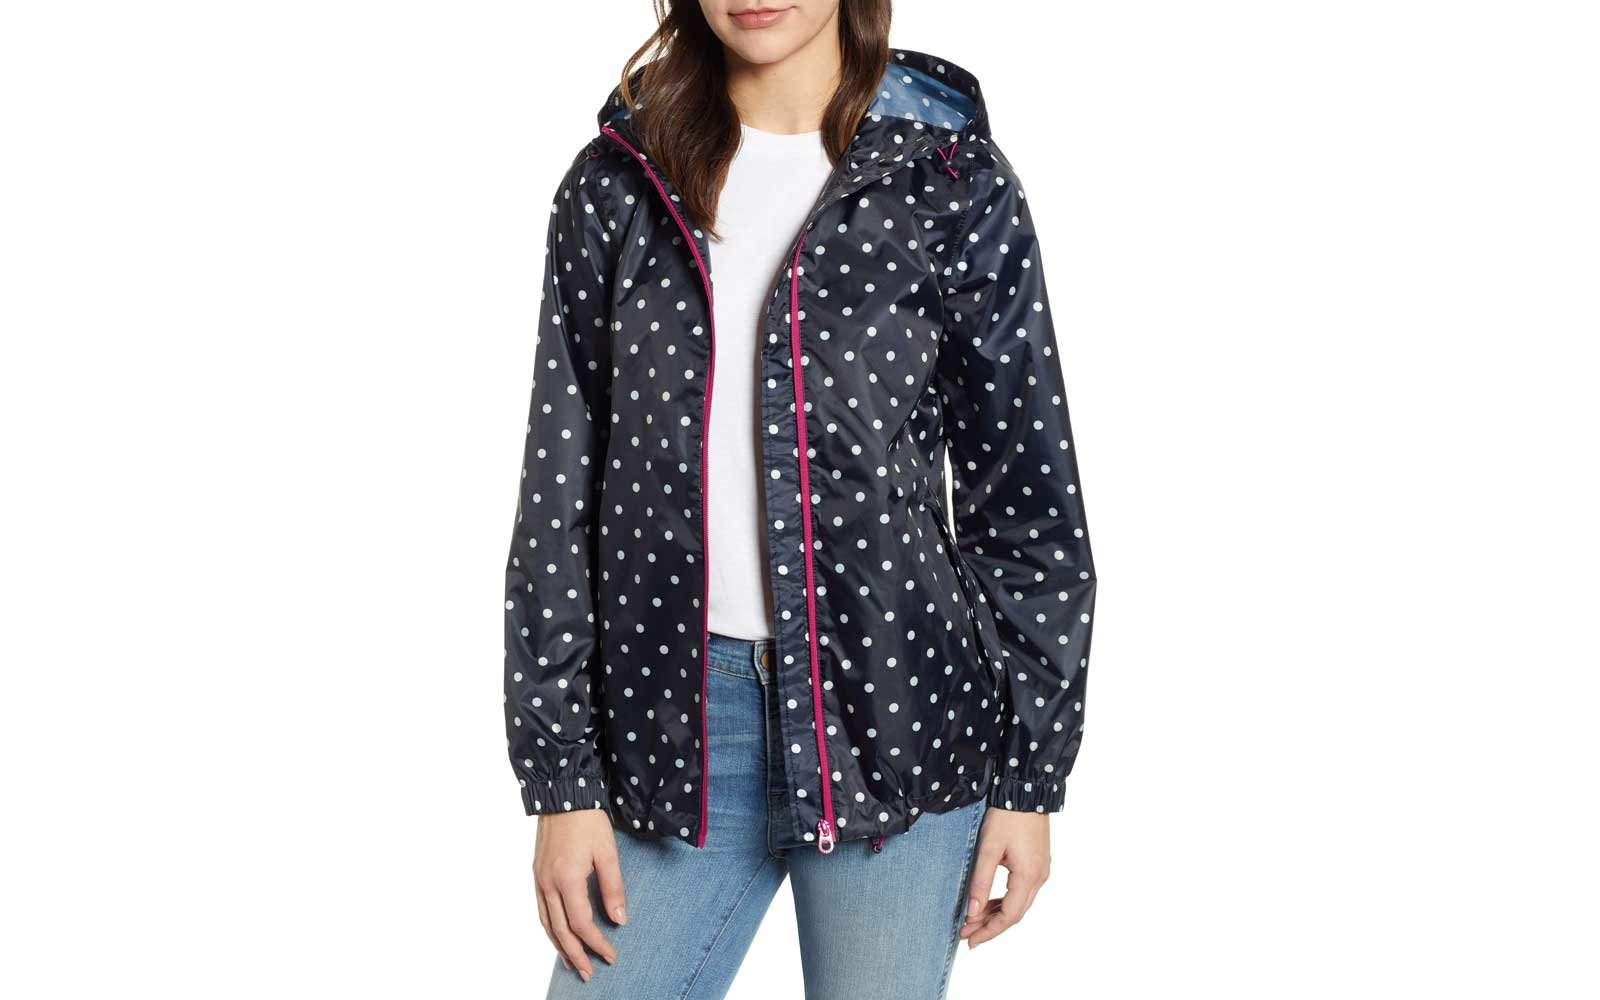 joules packable rain jacket